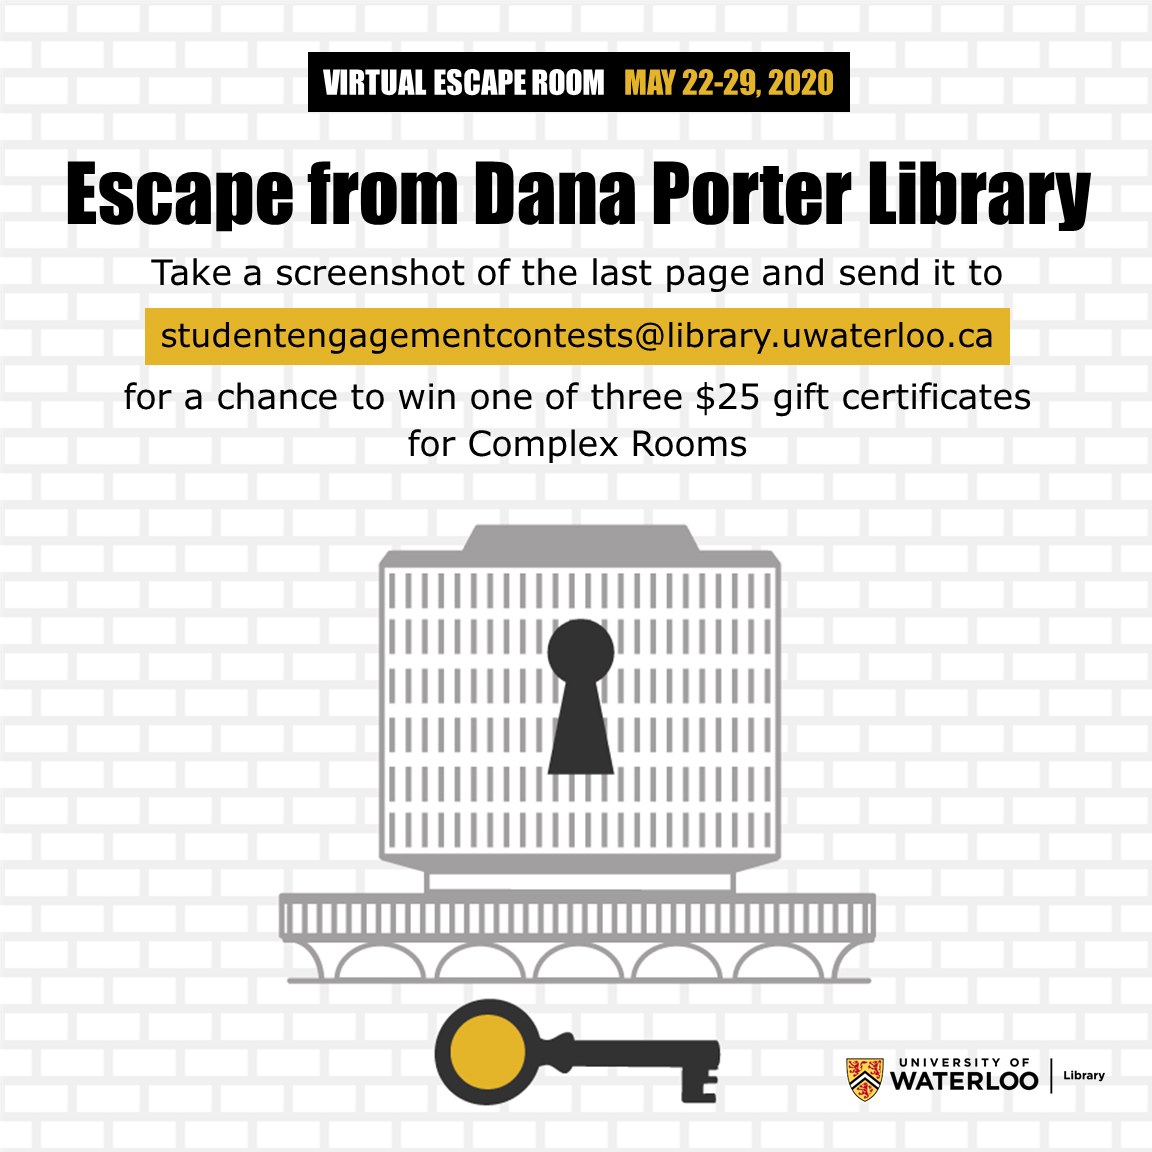 Virtual escape room, escape from Dana Porter Library